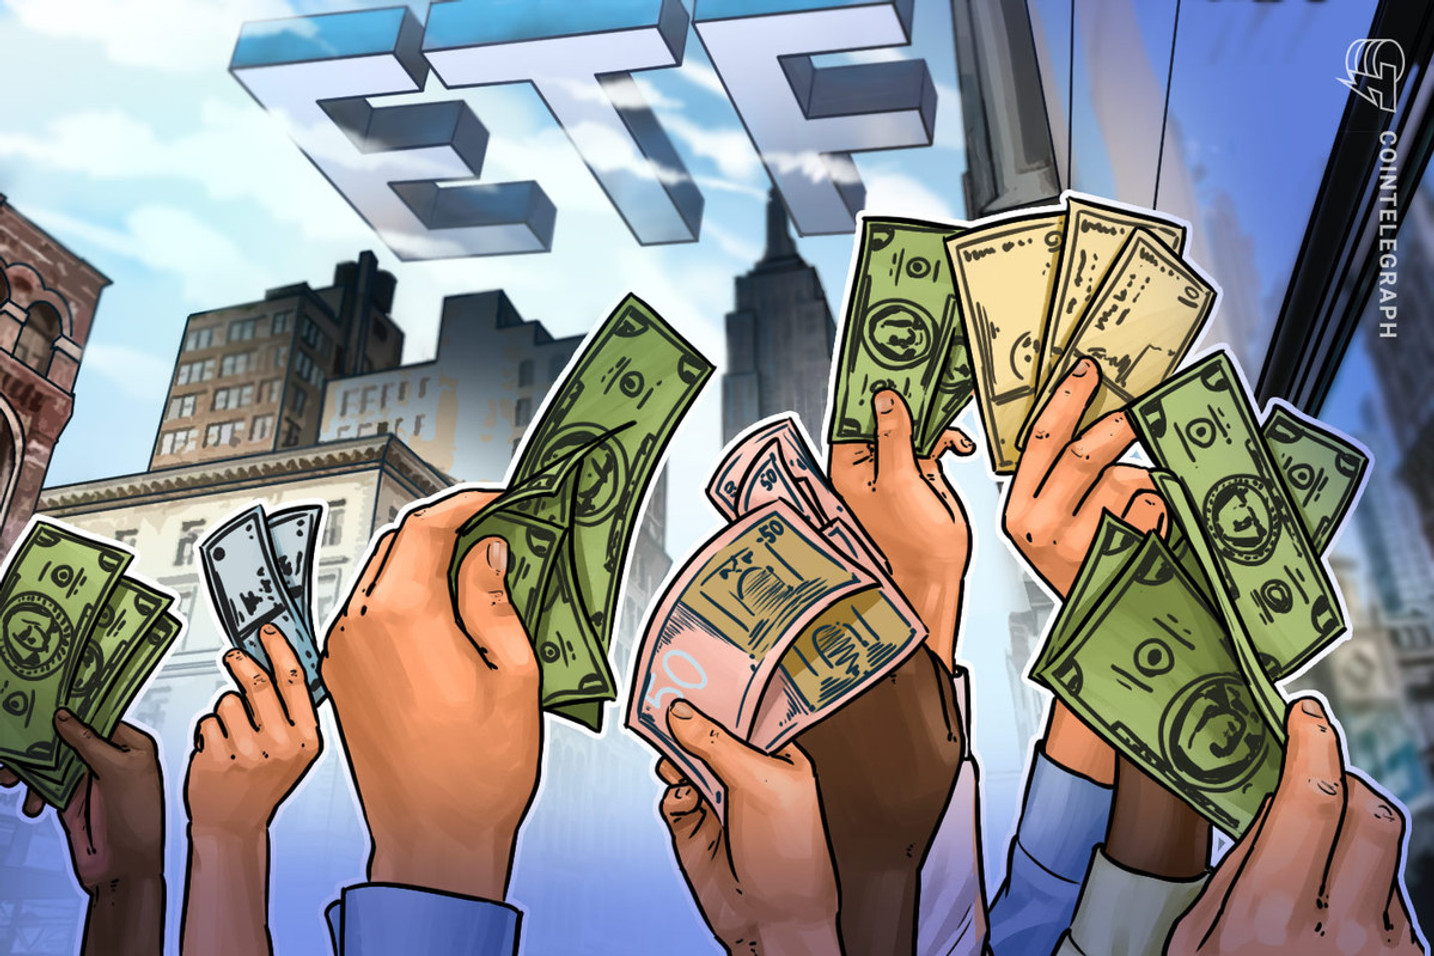 The race is on yet again for crypto ETFs as Valkyrie files registration